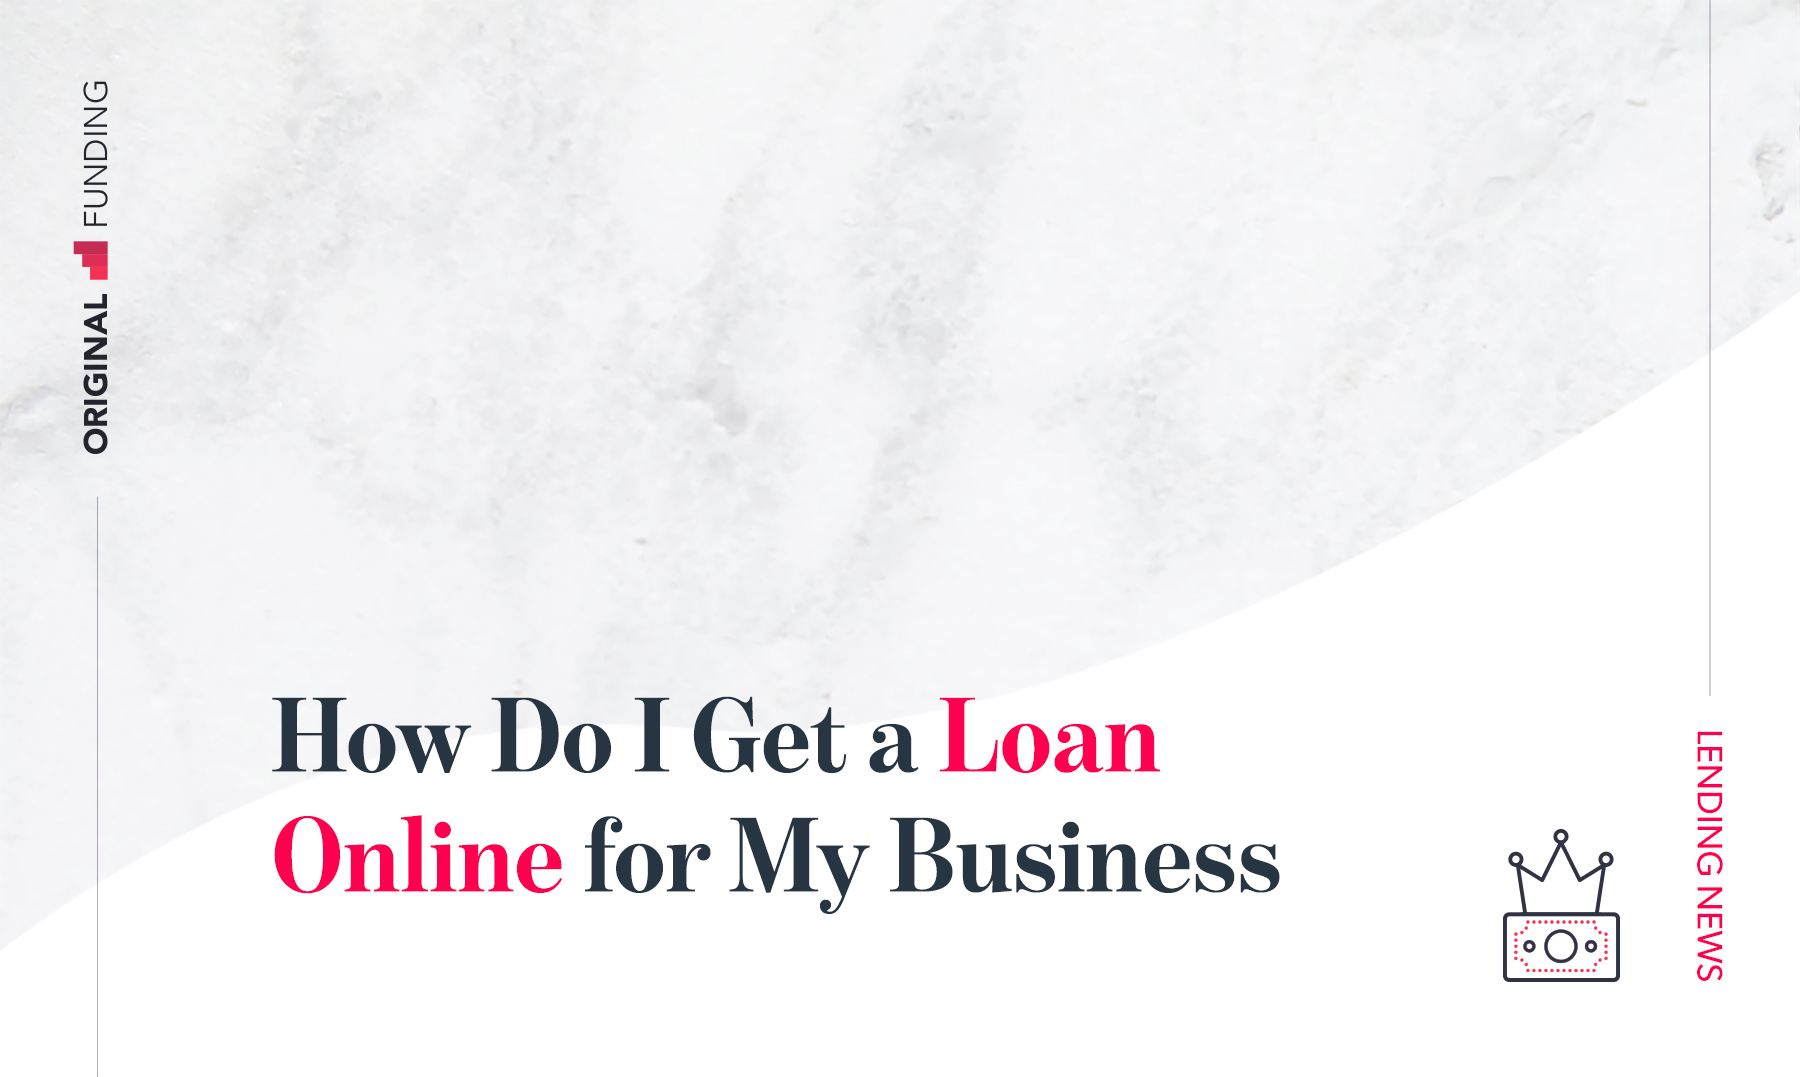 How Do I Get a Loan Online for My Business